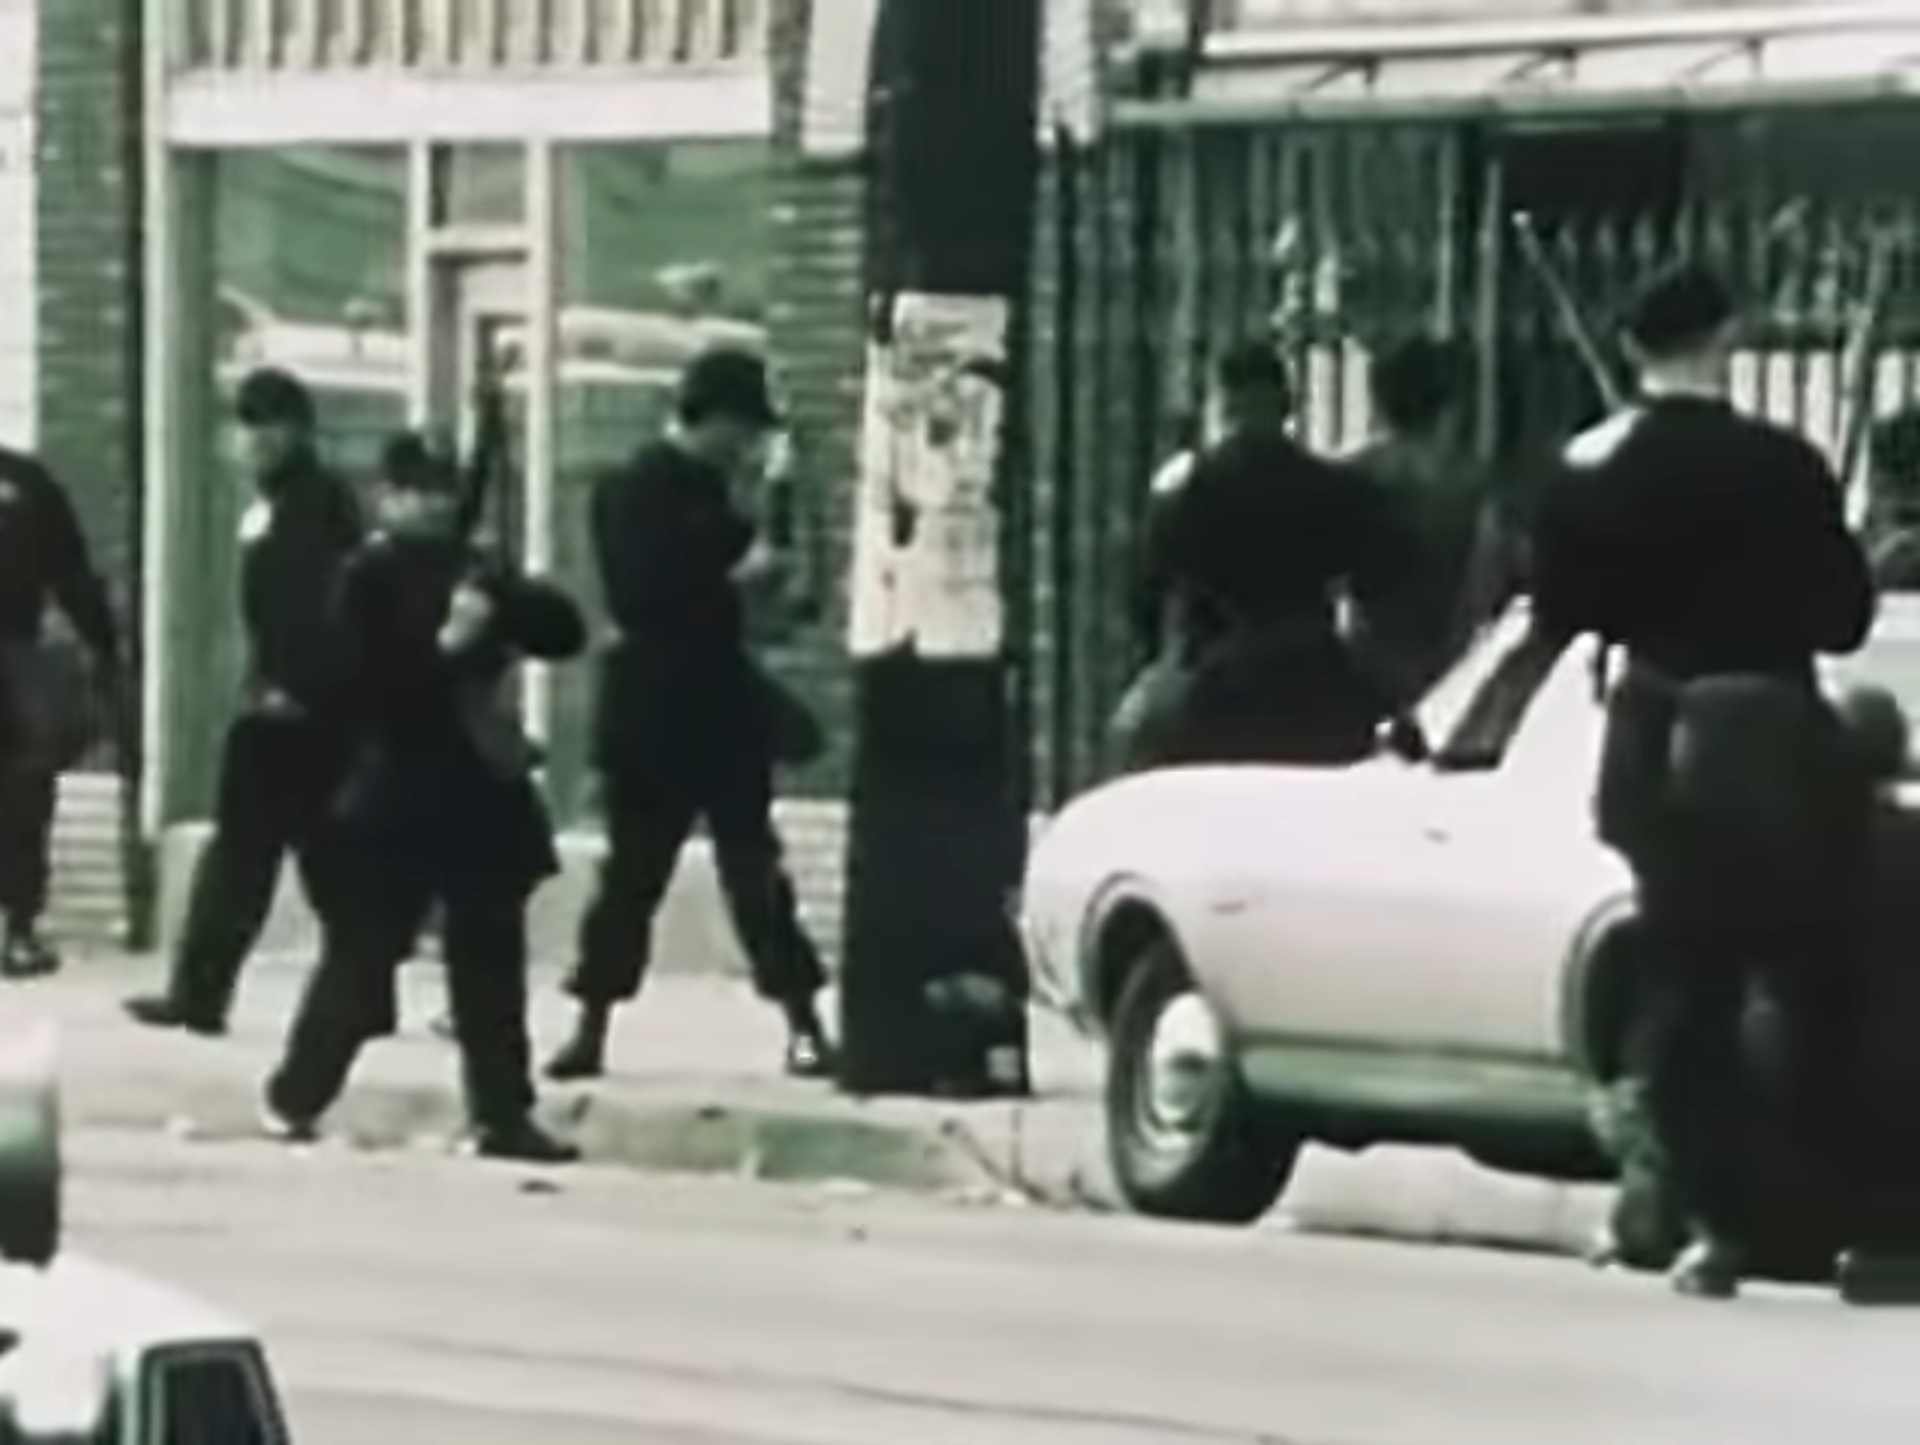 The Los Angeles Police Department's (LAPD) Special Weapons and Tactics (SWAT) team on its first mission: a siege of the Black Panther Party's LA headquarters, December 8, 1969 - Sputnik International, 1920, 07.09.2021